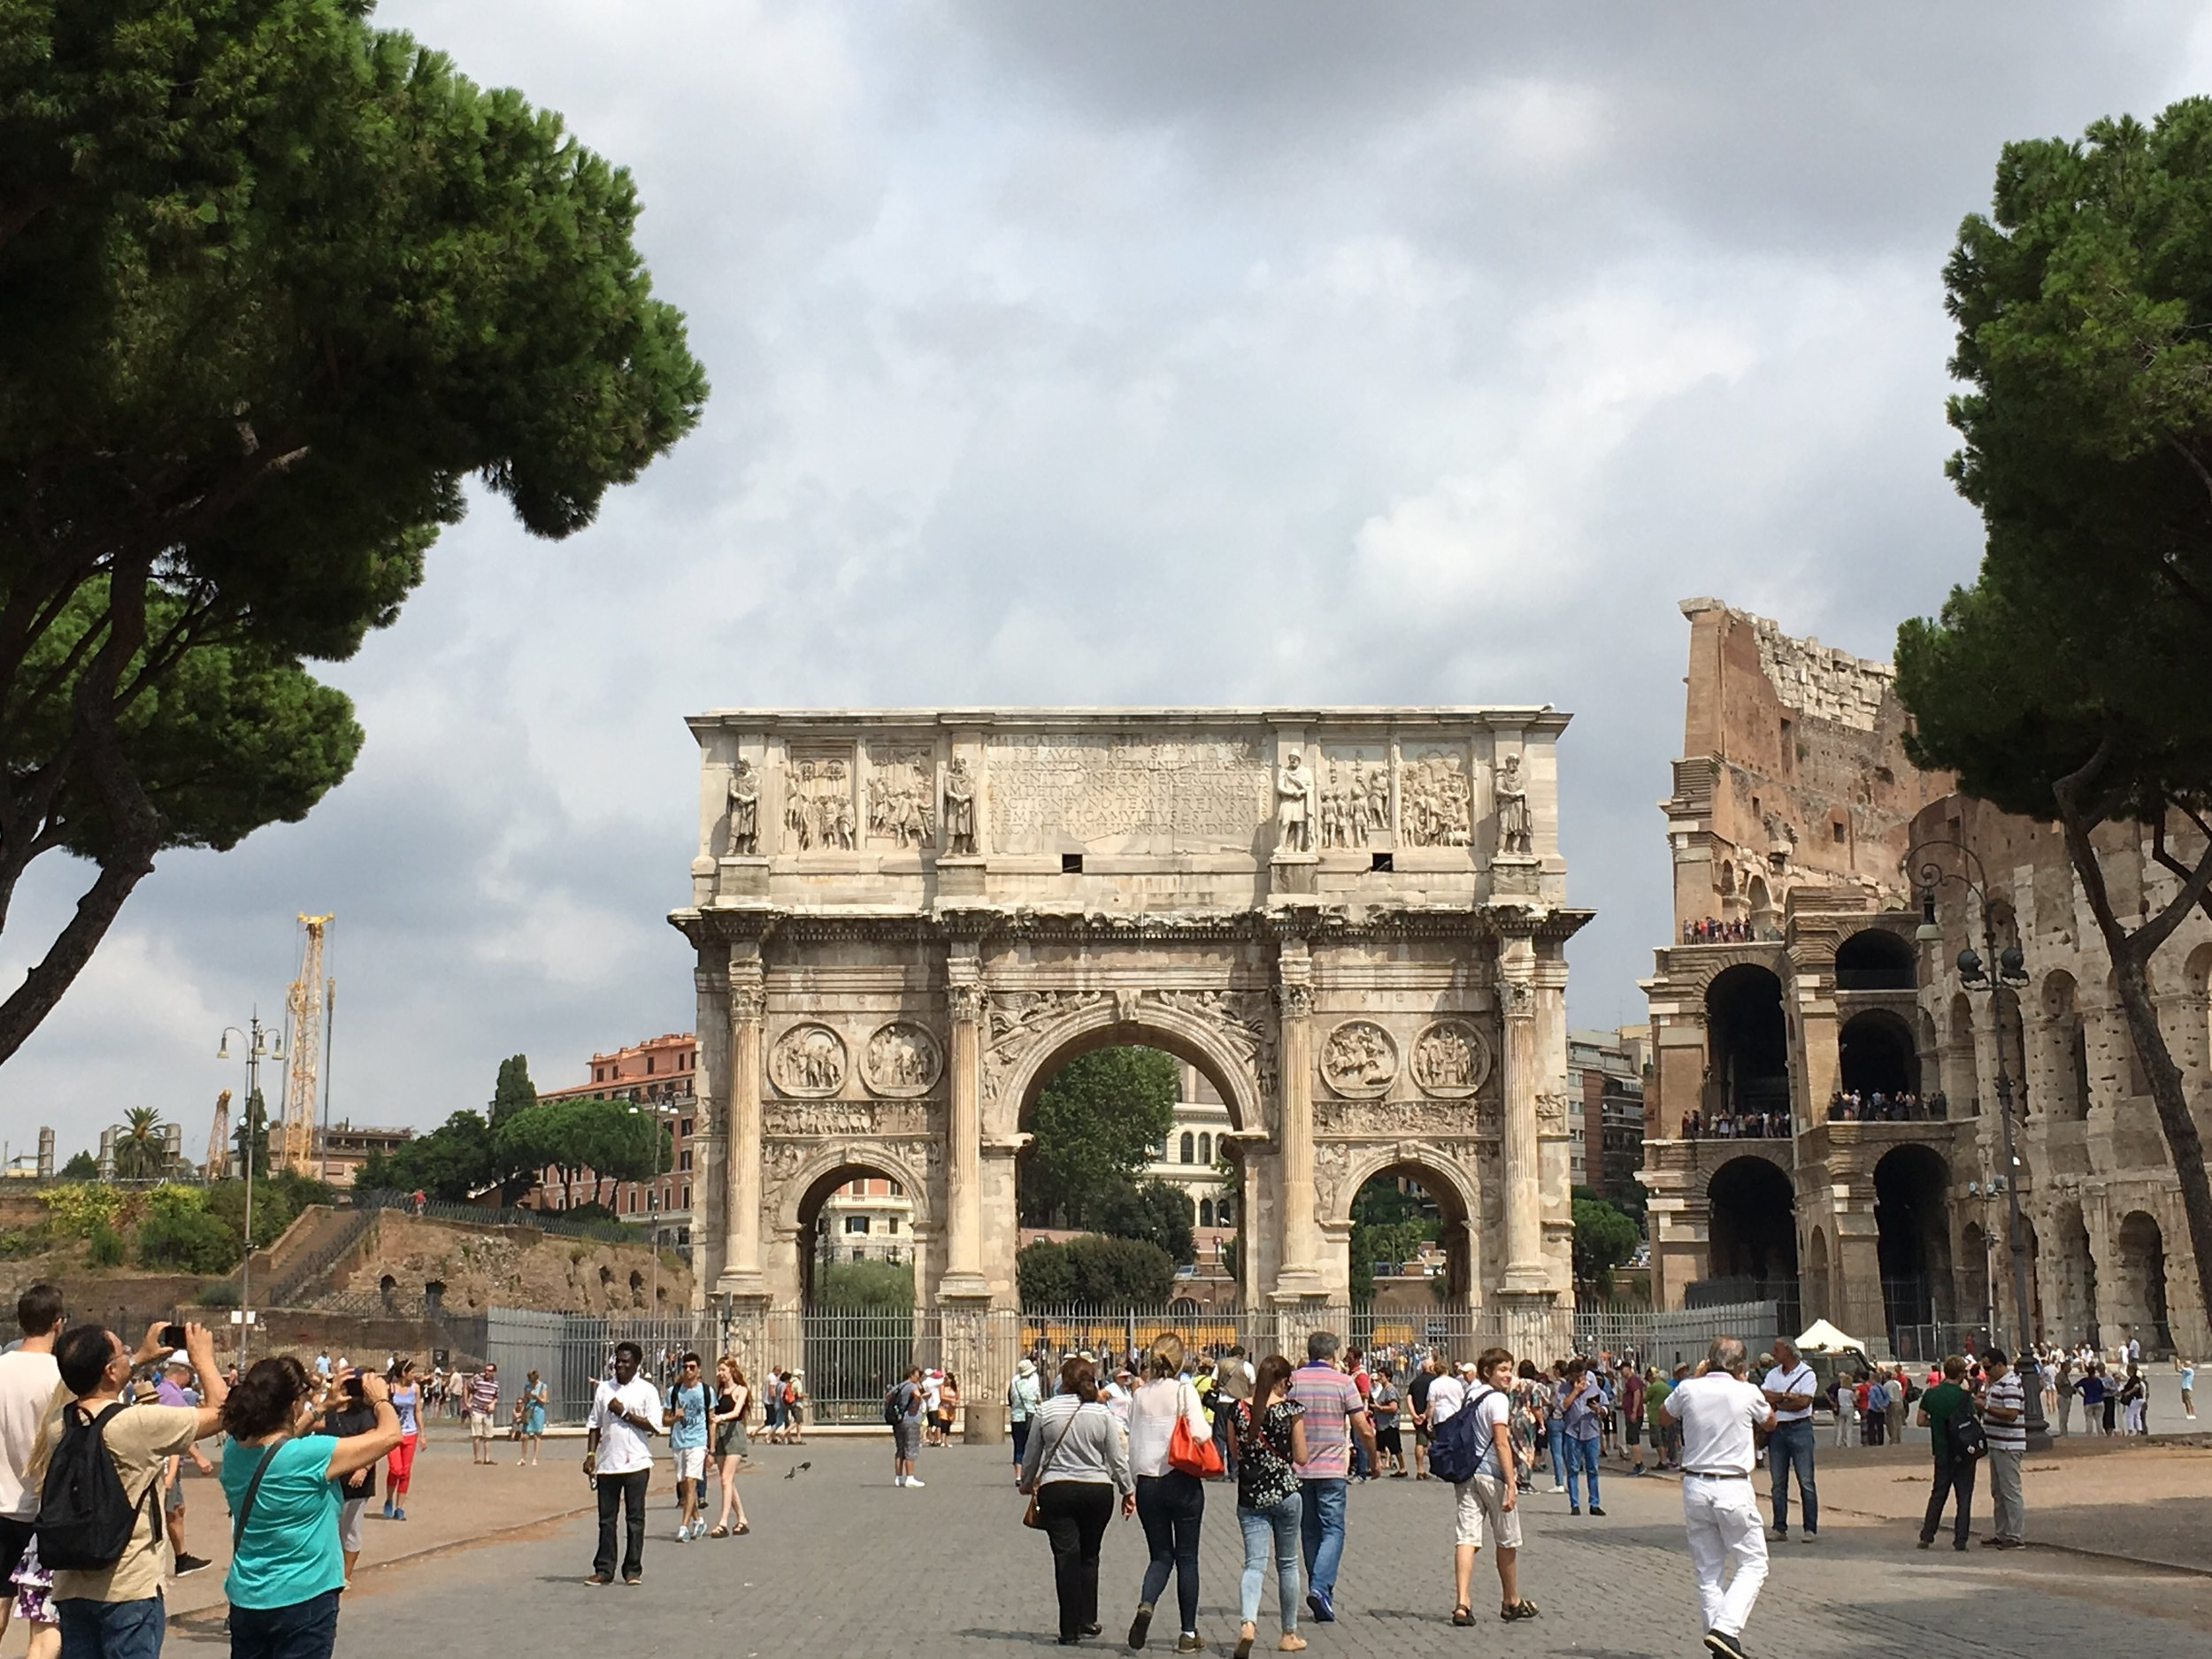 Arch of Constantine, Colosseum off to the right